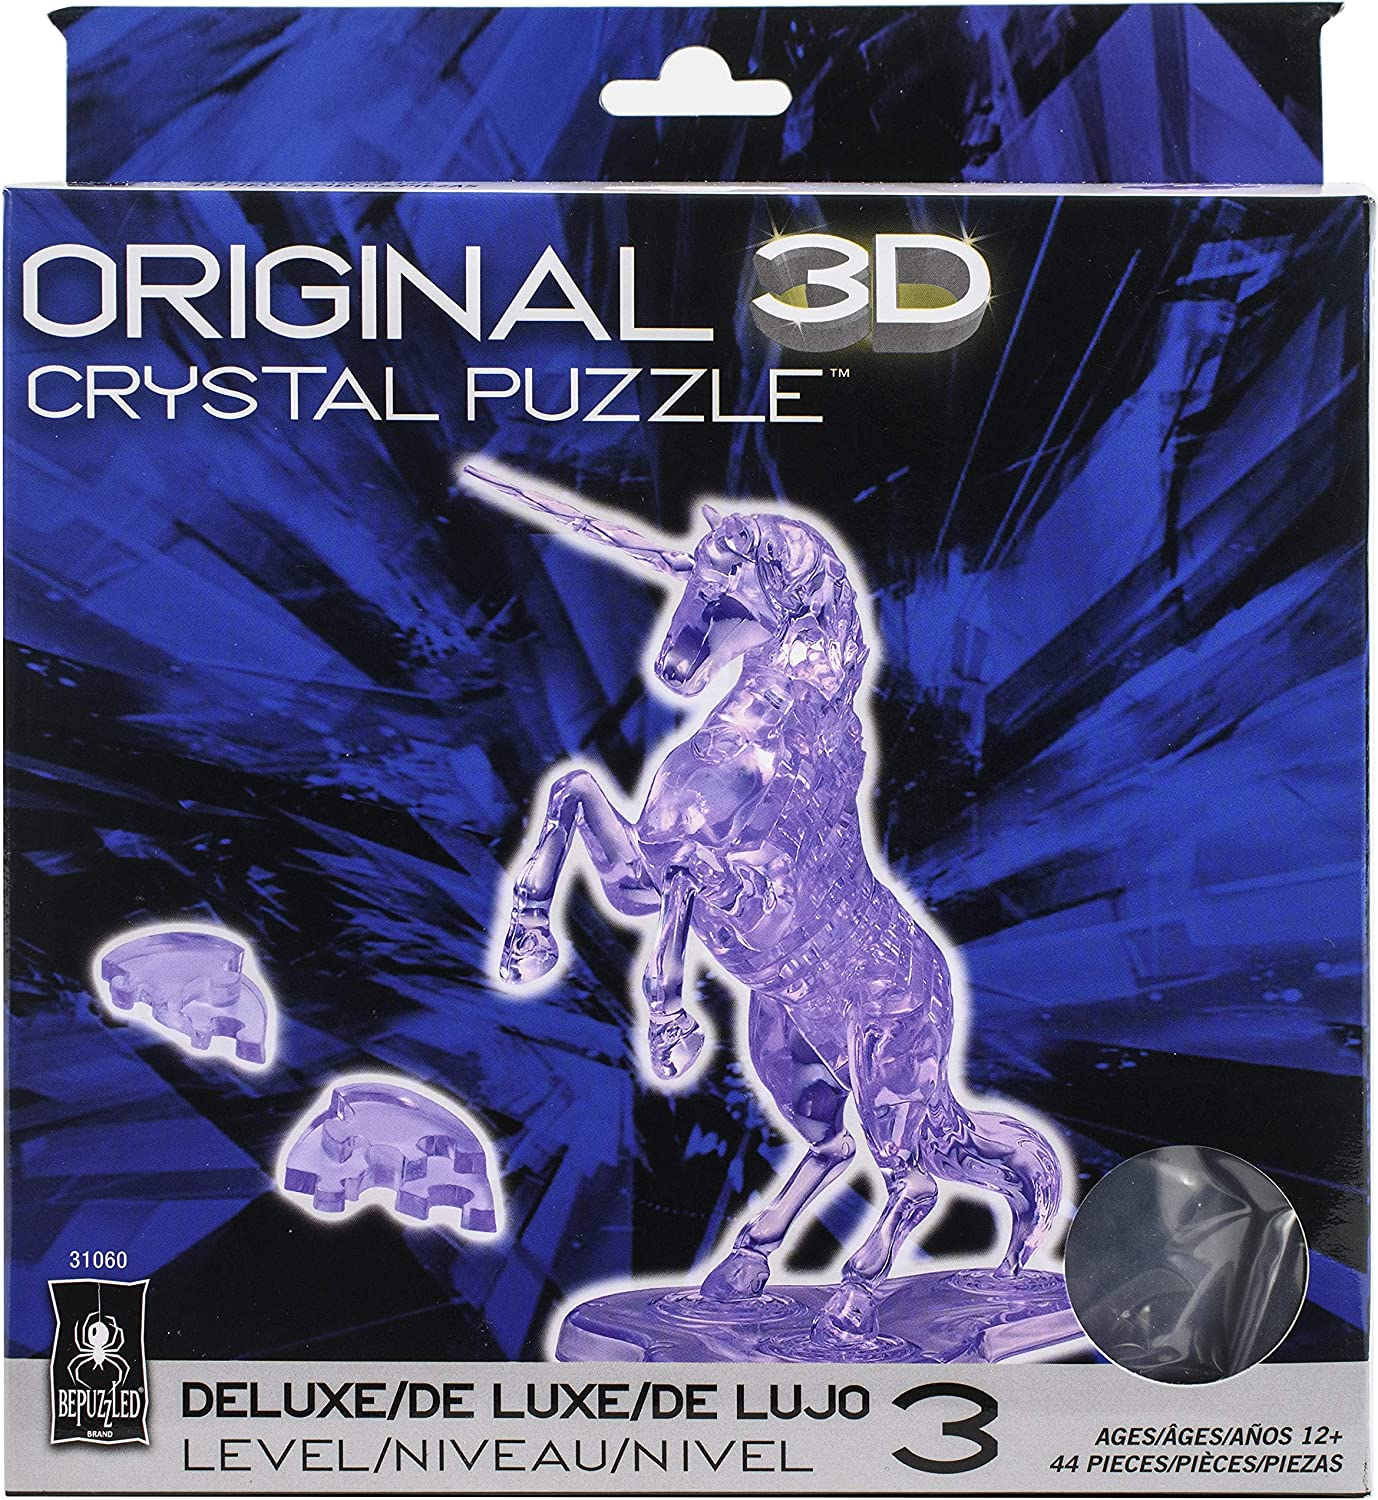 BePuzzled (BEPUA) Deluxe 3D Crystal Puzzle-Unicorn - Fun Yet Challenging Brain Teaser That Will Test Your Skills & Imagination, for Ages 12+(Purple), Model Number: 31060M